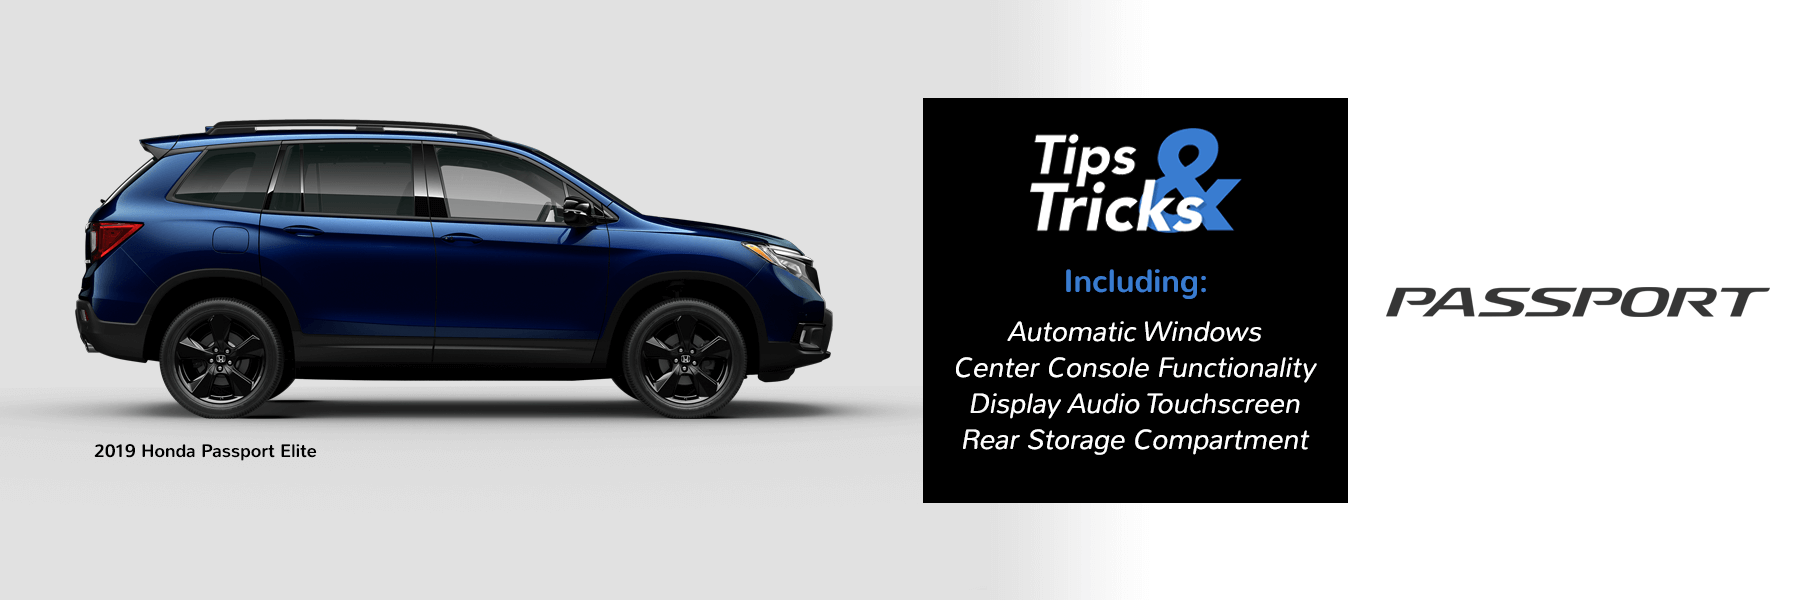 Honda Tips and Tricks 2019 Passport Slider